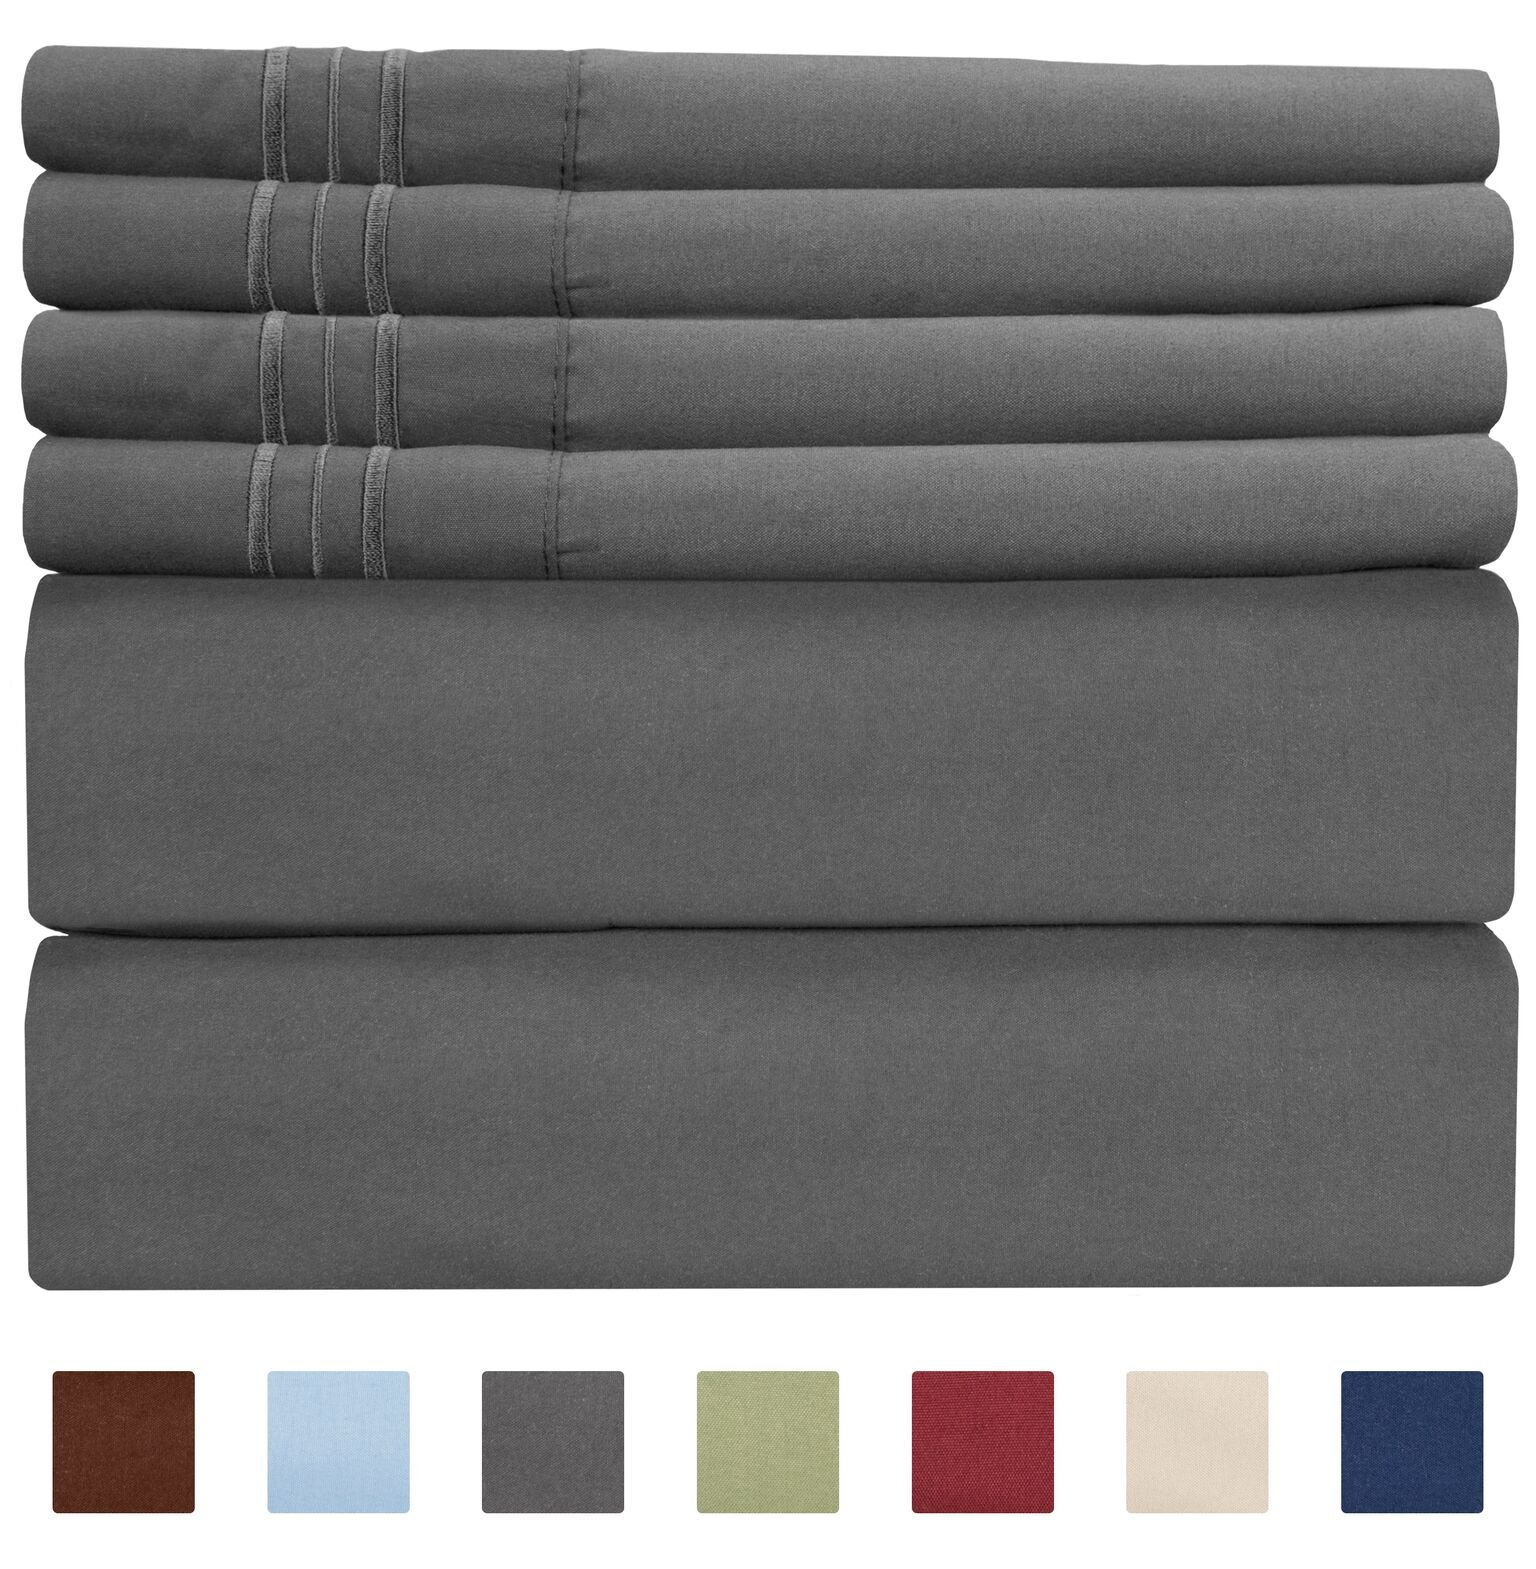 Extra Deep Pocket Sheets - Deep Pocket Queen Sheets - Extra Deep Pocket Queen Sheets - Deep Fitted Sheet Set - Extra Deep Pocket Queen Size Sheets - Deep Pockets Sheets fit 18 Inch to 24 Inches Sheets by CGK Unlimited